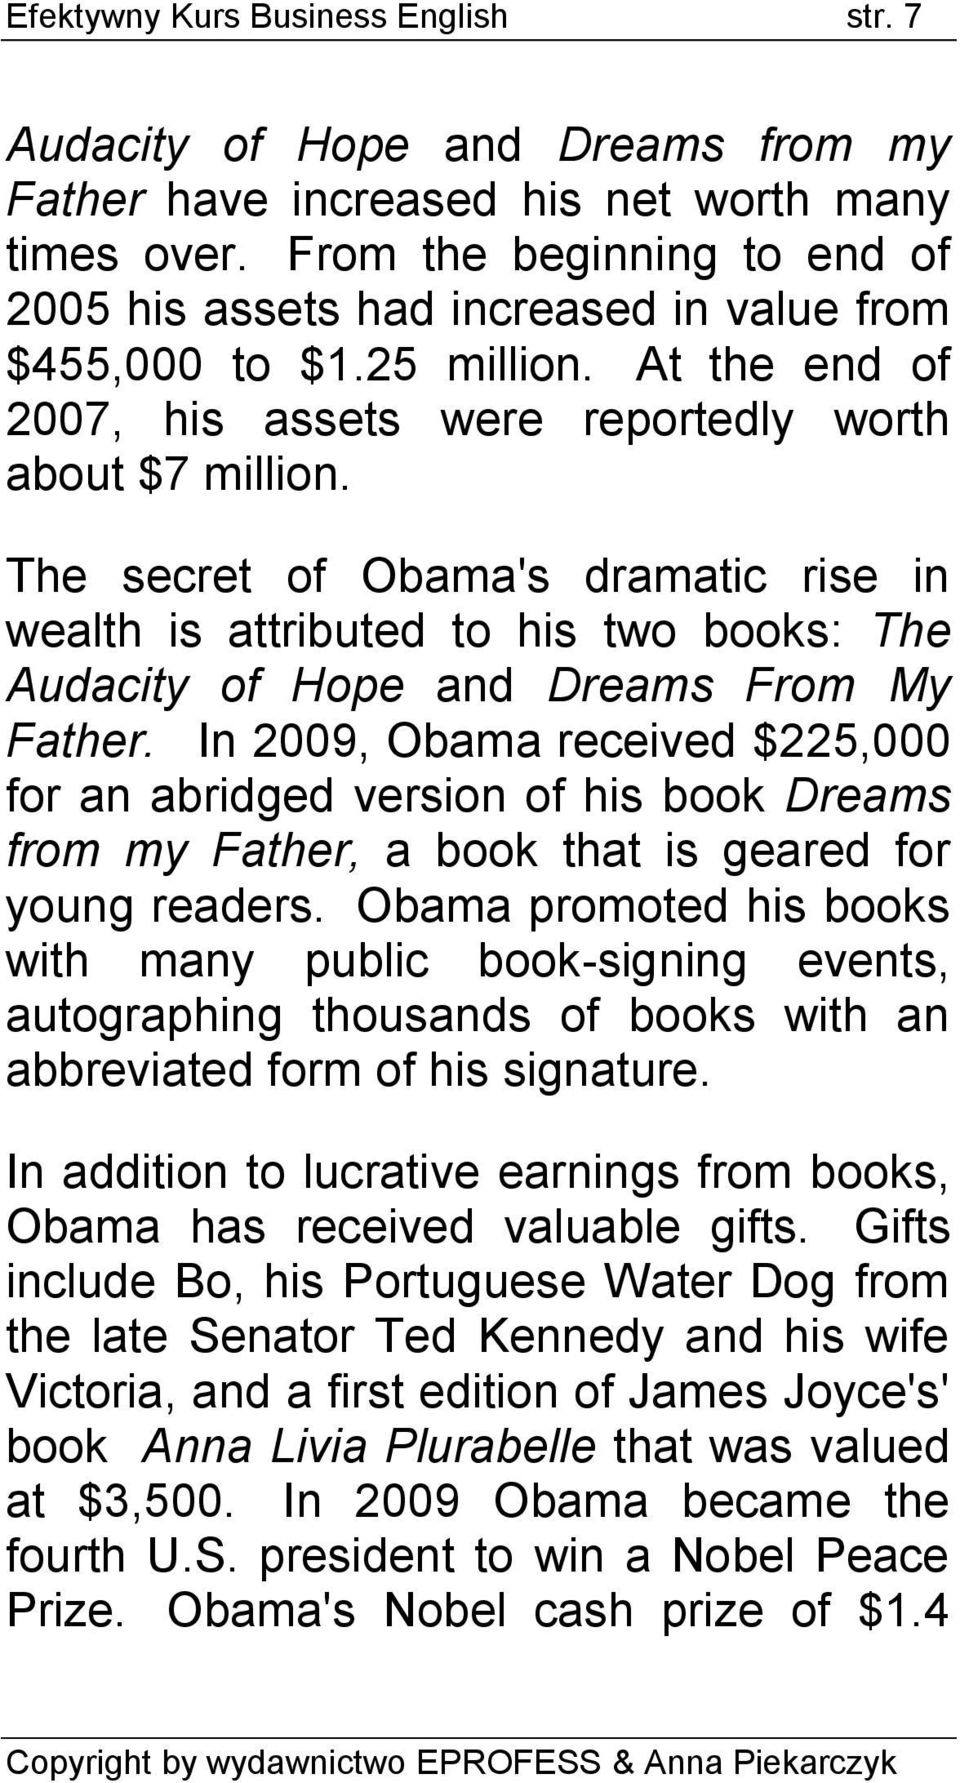 The secret of Obama's dramatic rise in wealth is attributed to his two books: The Audacity of Hope and Dreams From My Father.